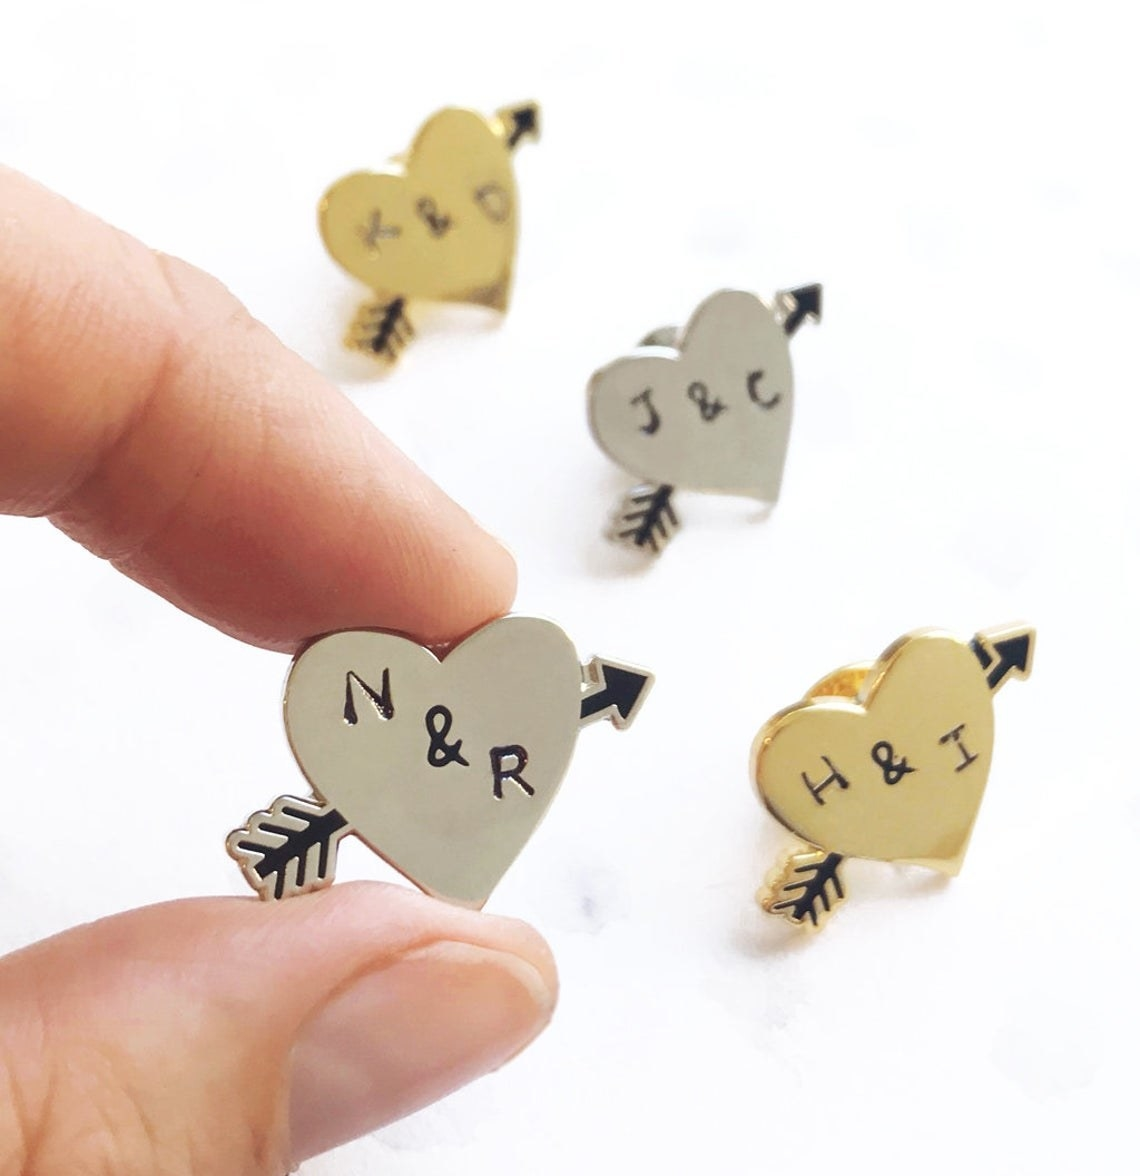 heart shaped pins with arrows going through them and two initials